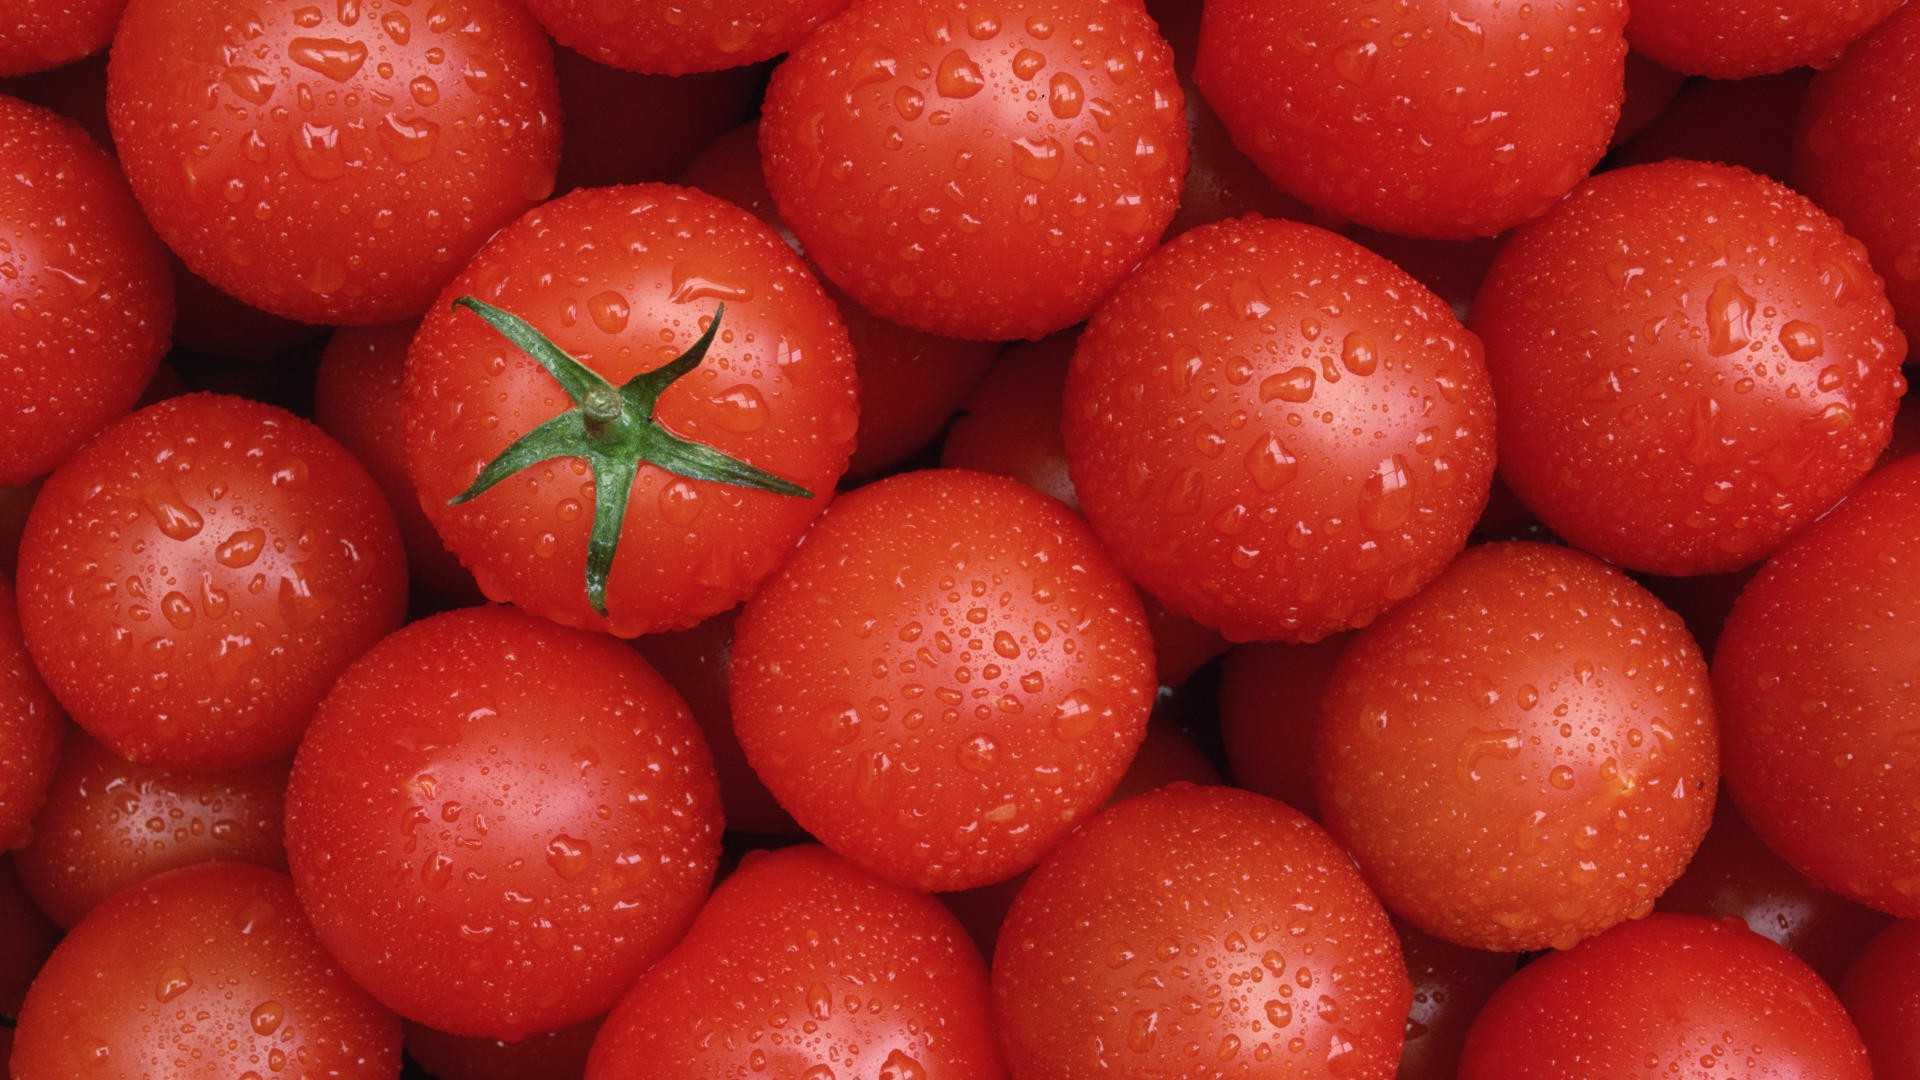 tomatoes wallpaper 44458